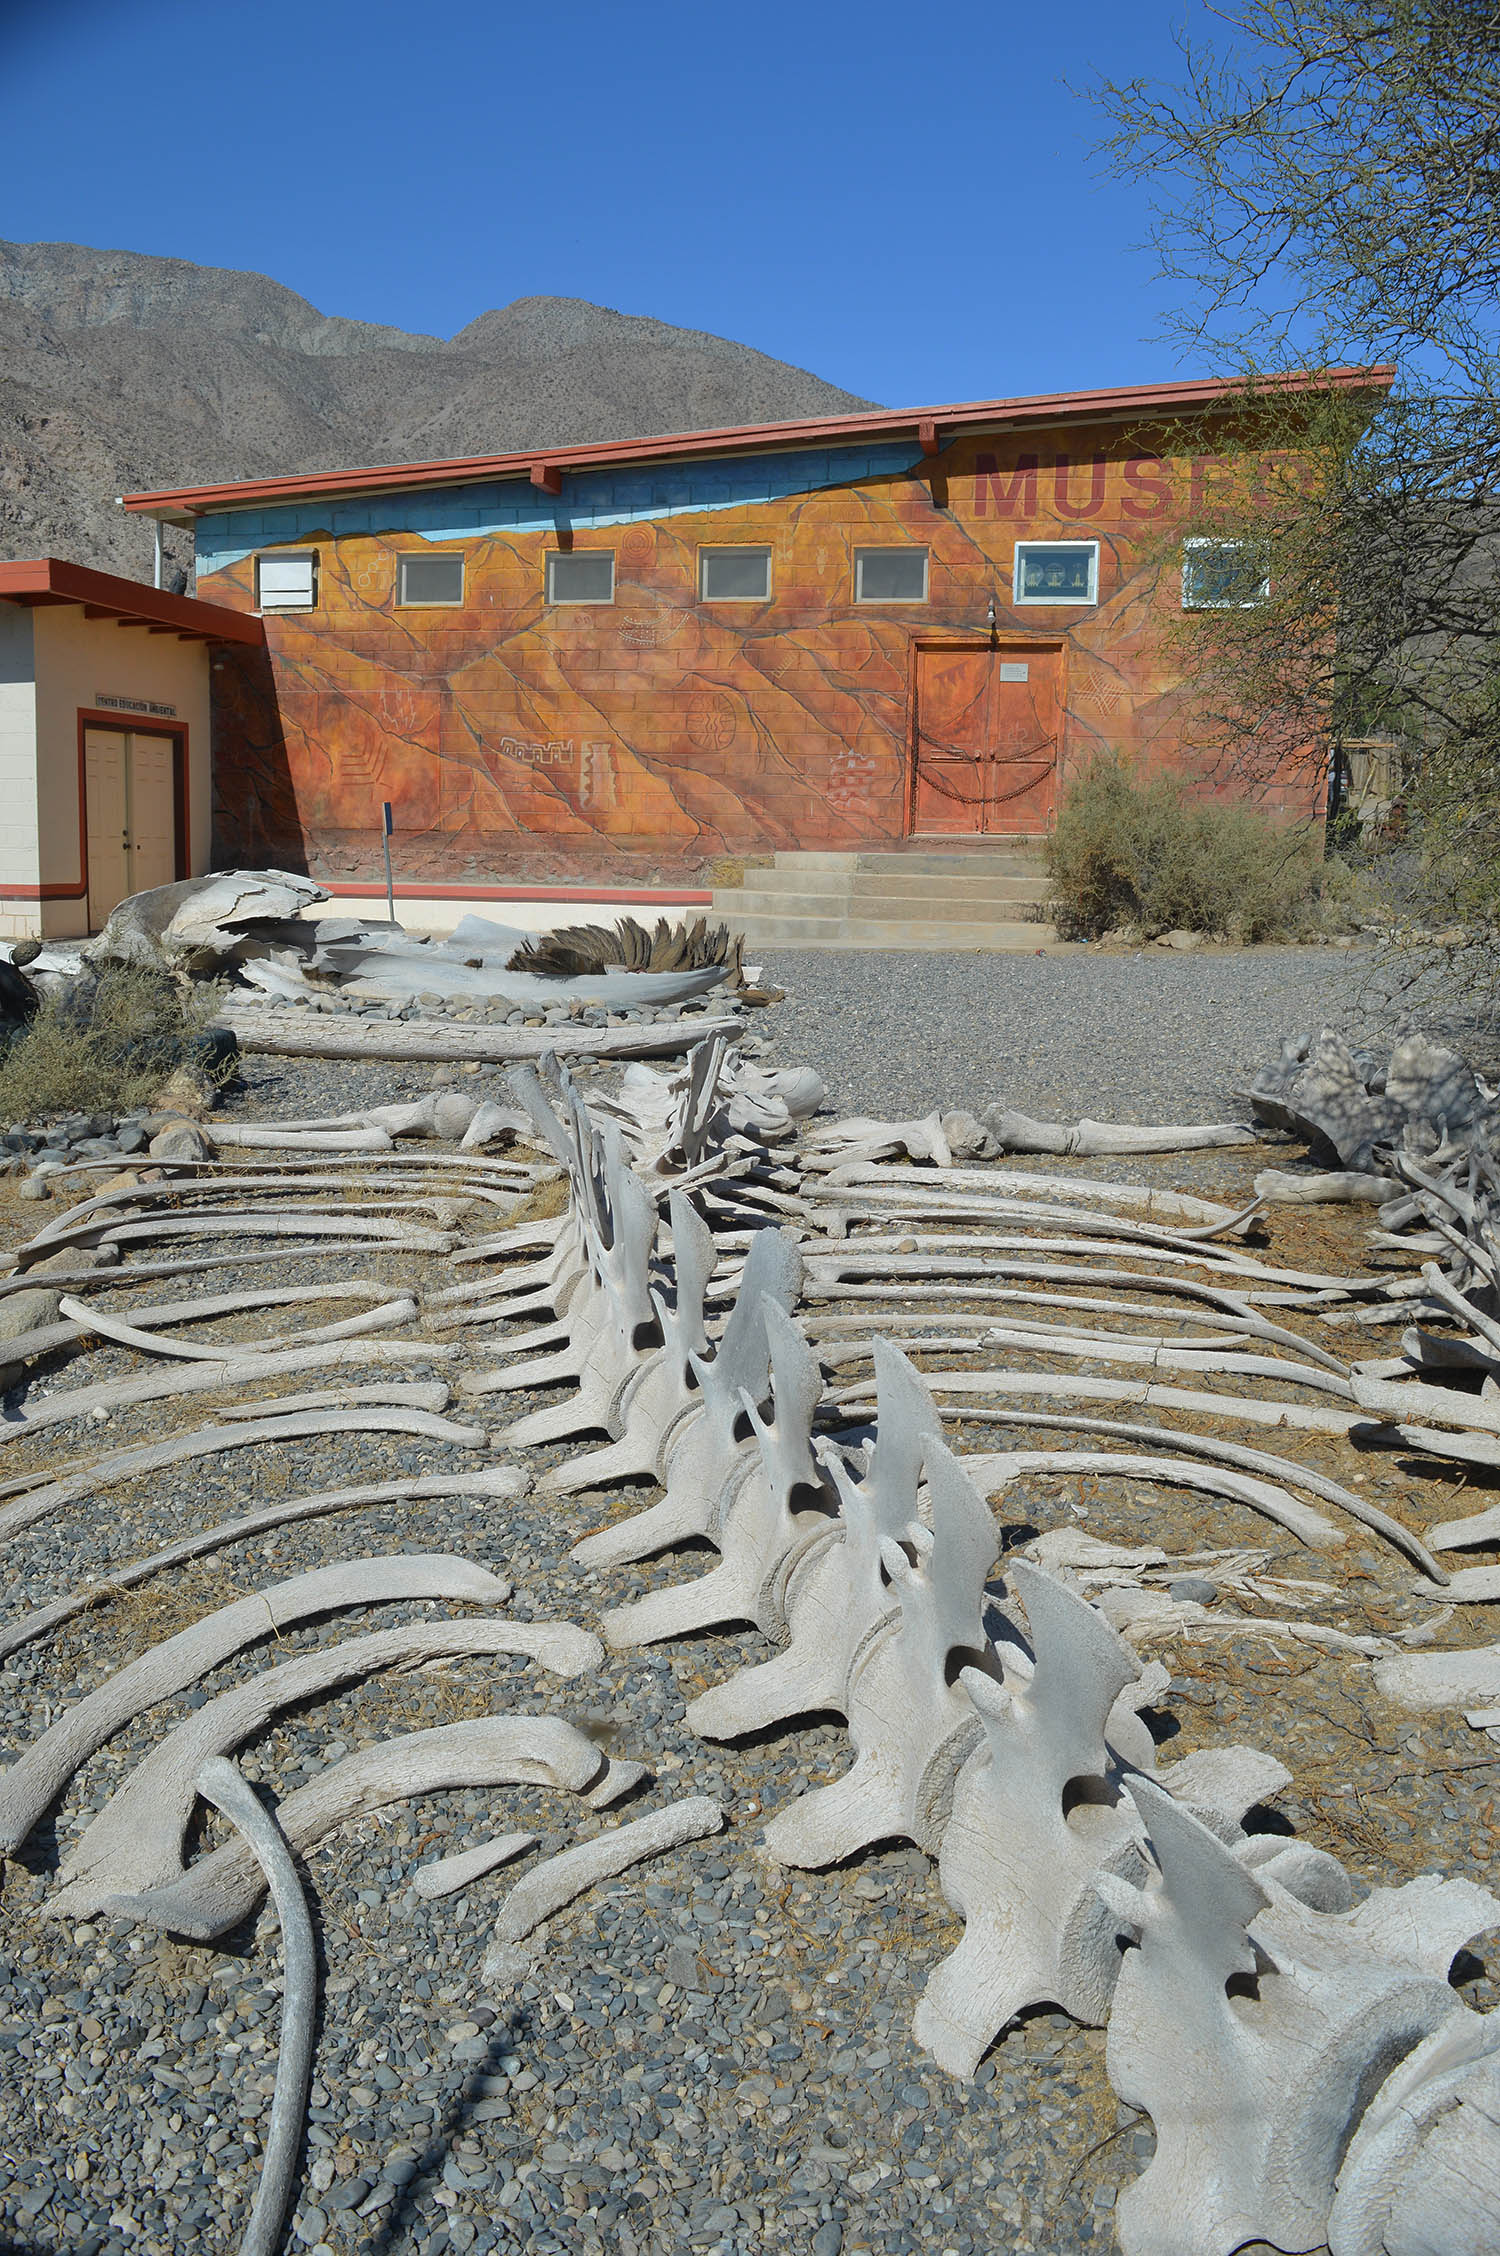 The Bahie de Los Angeles Natural History Musem. Whale bones in foreground.